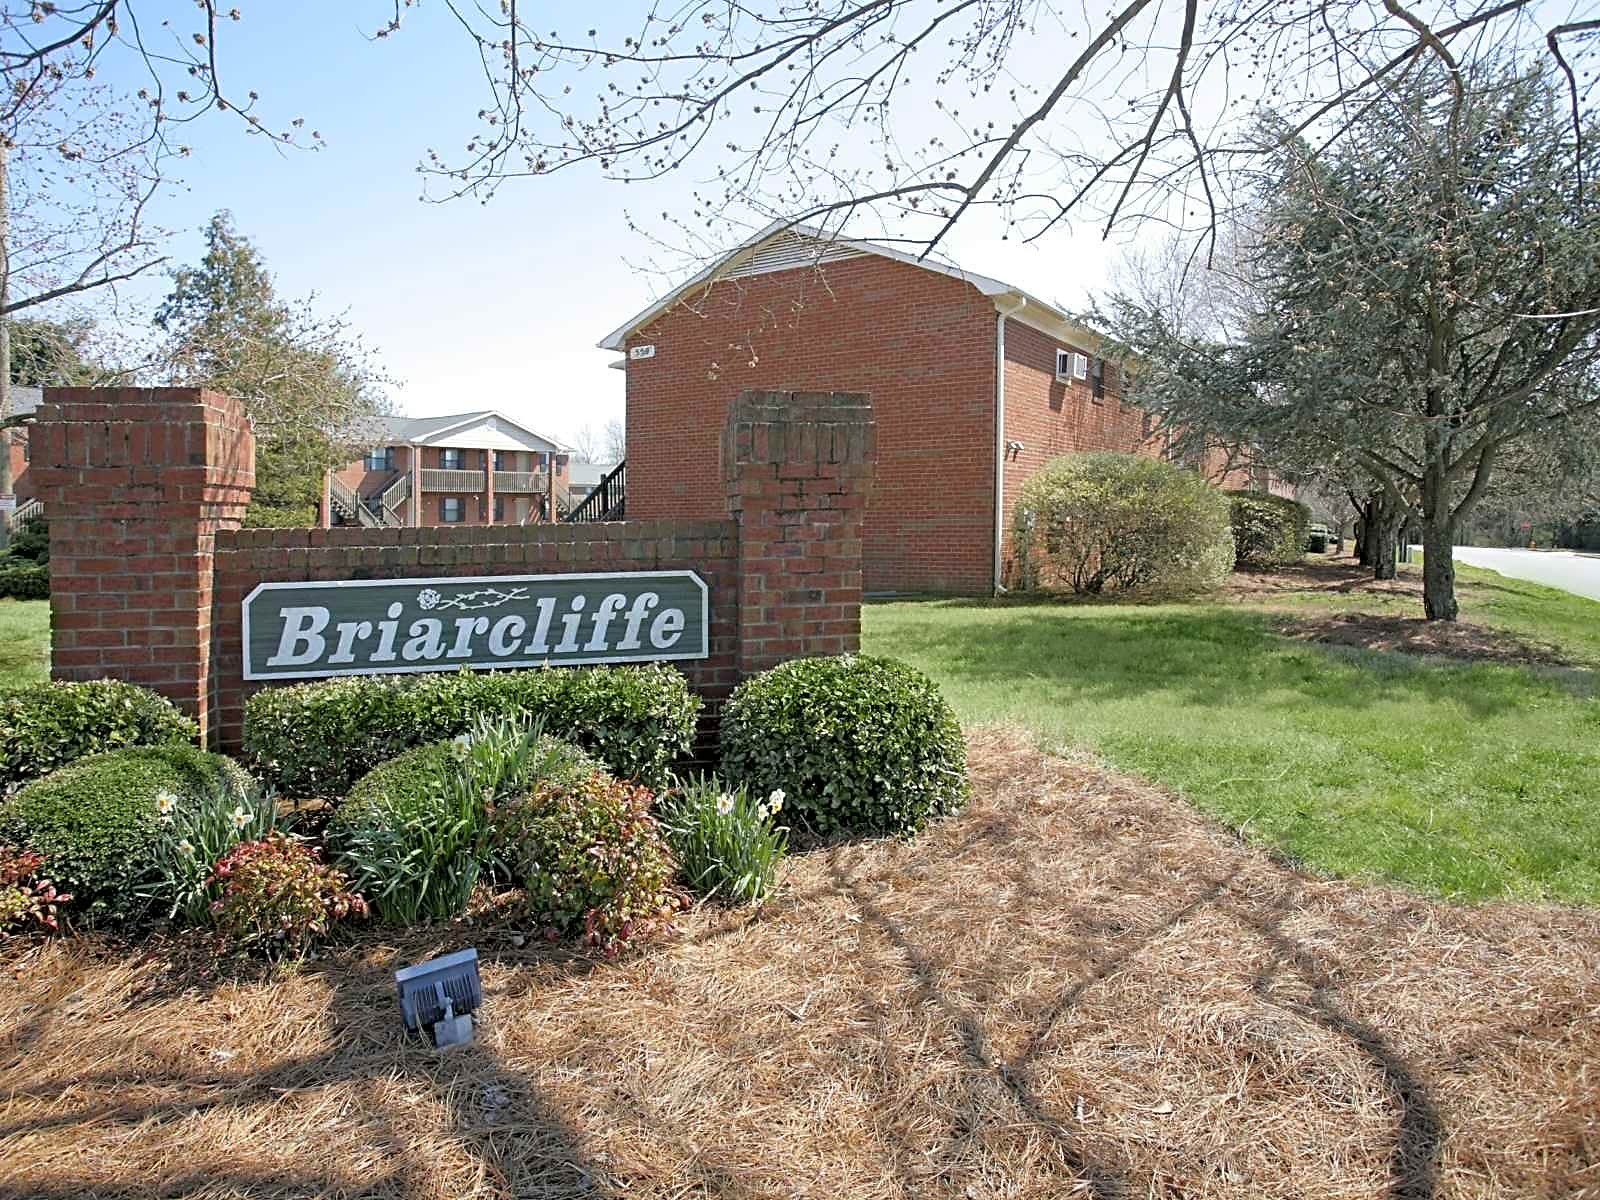 Briarcliffe